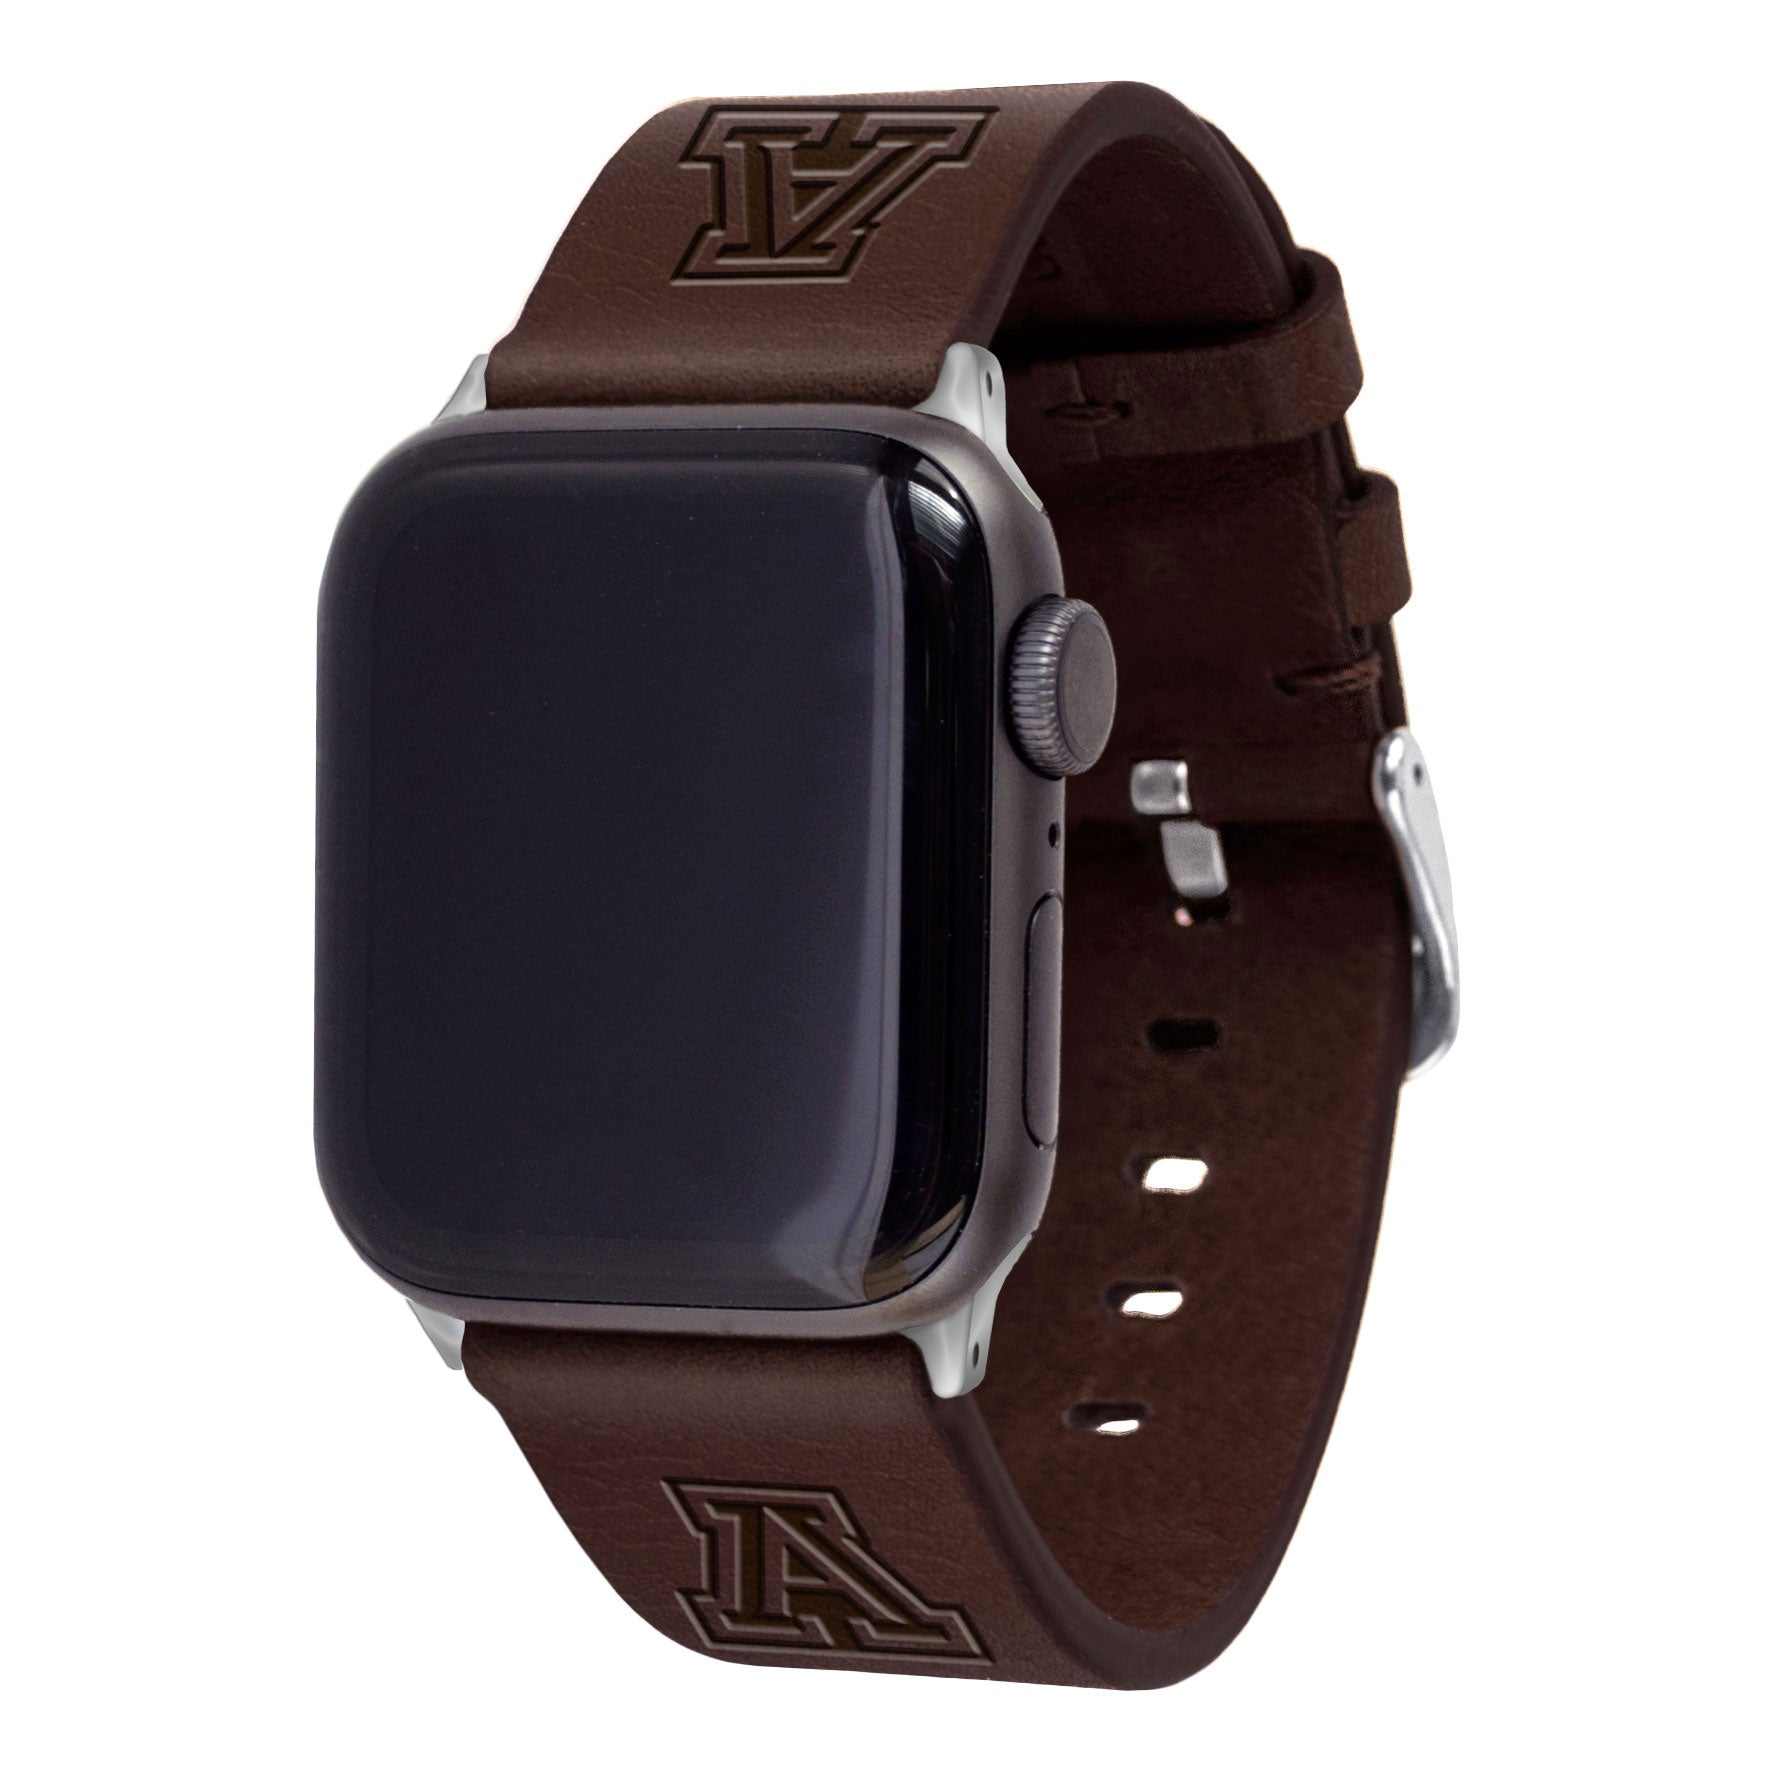 Arizona Wildcats Leather Apple Watch Band - Affinity Bands